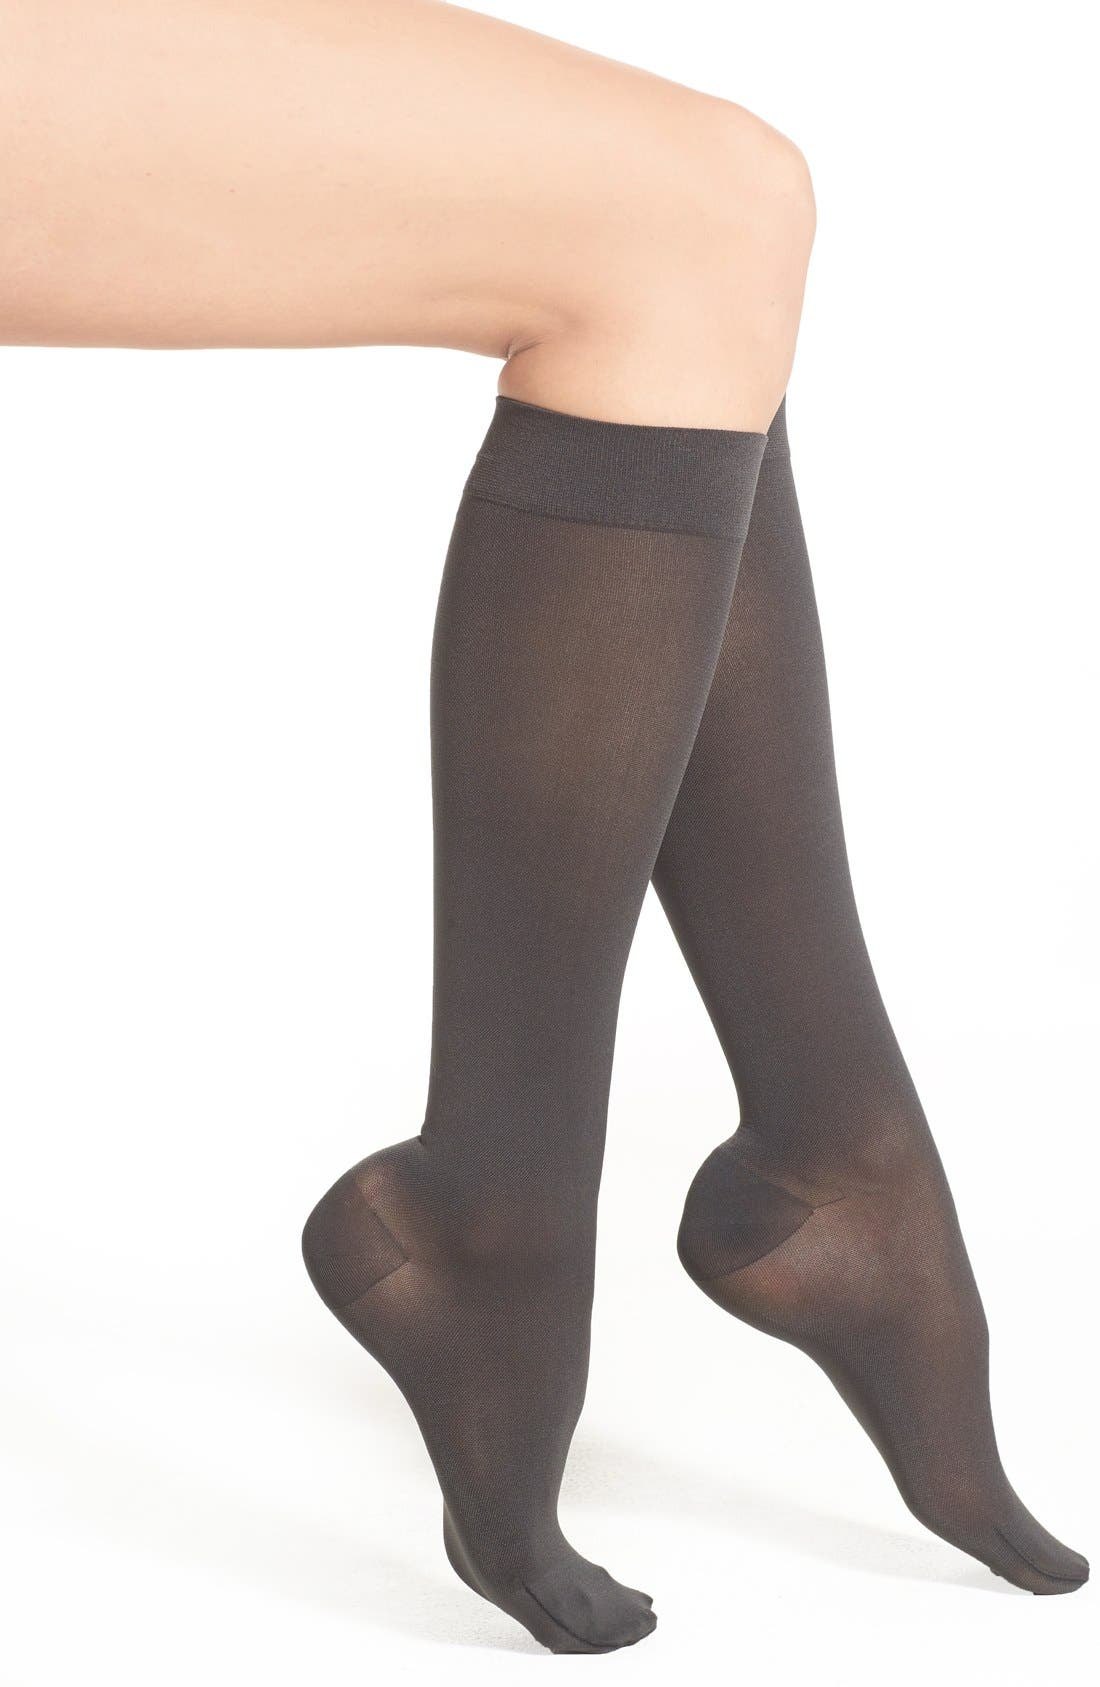 Alternate Image 1 Selected - INSIGNIA by SIGVARIS 'Headliner' Compression Knee High Socks